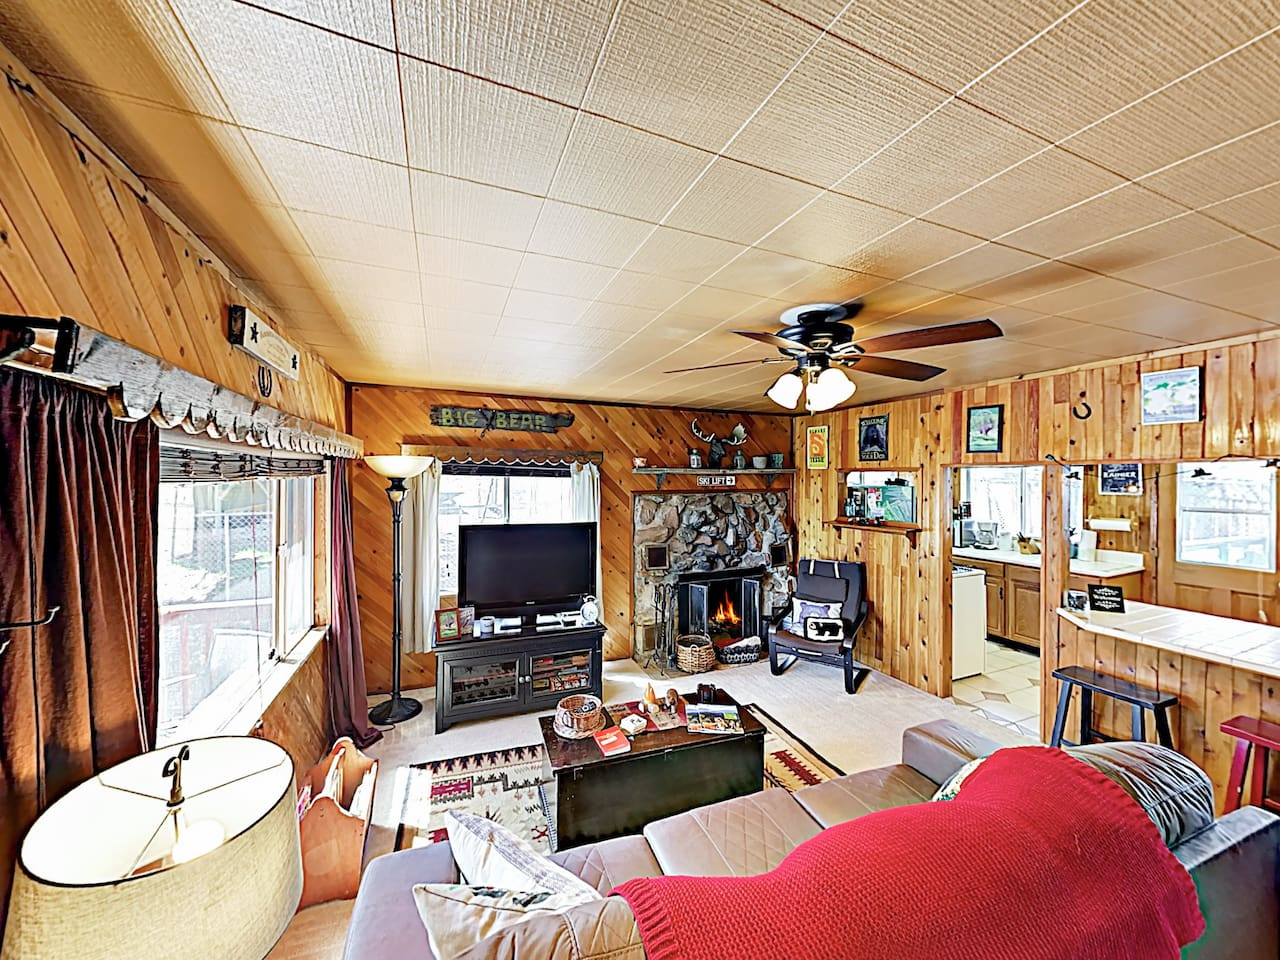 Welcome to Big Bear! This home is professionally managed by TurnKey Vacation Rentals.